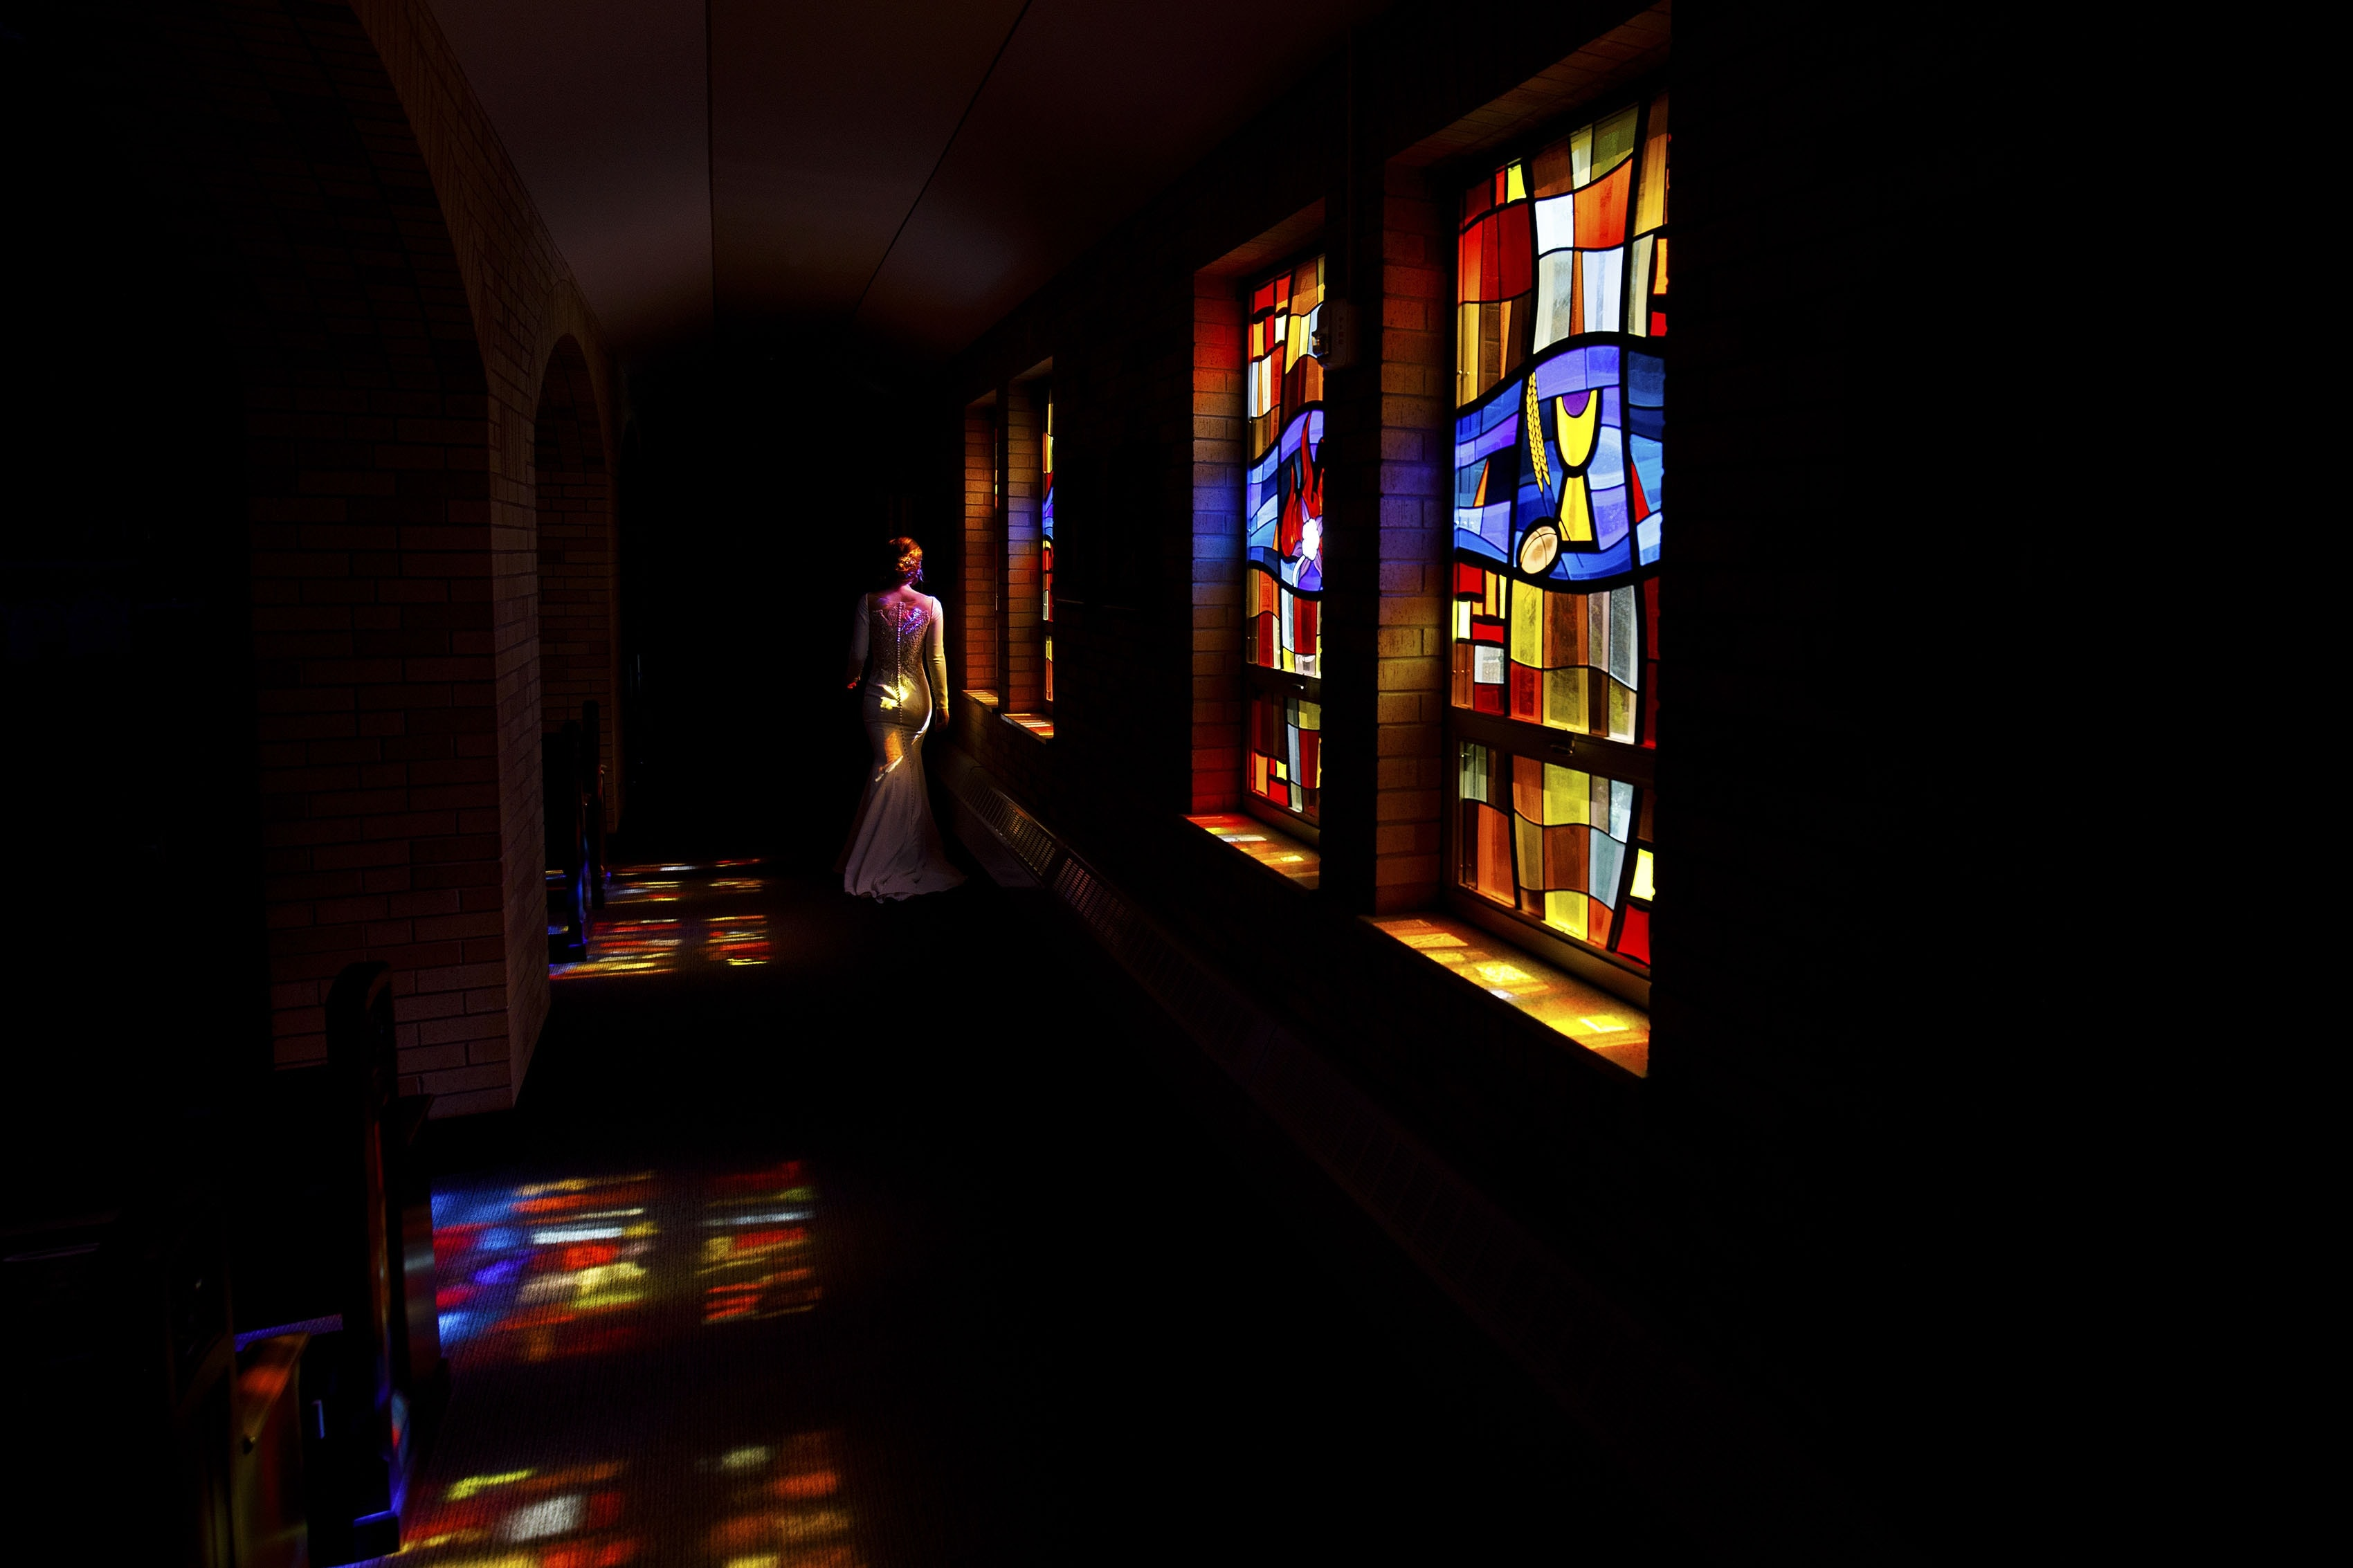 The bride walks down the stained glass hallway at Our Lady of Lourdes before her wedding